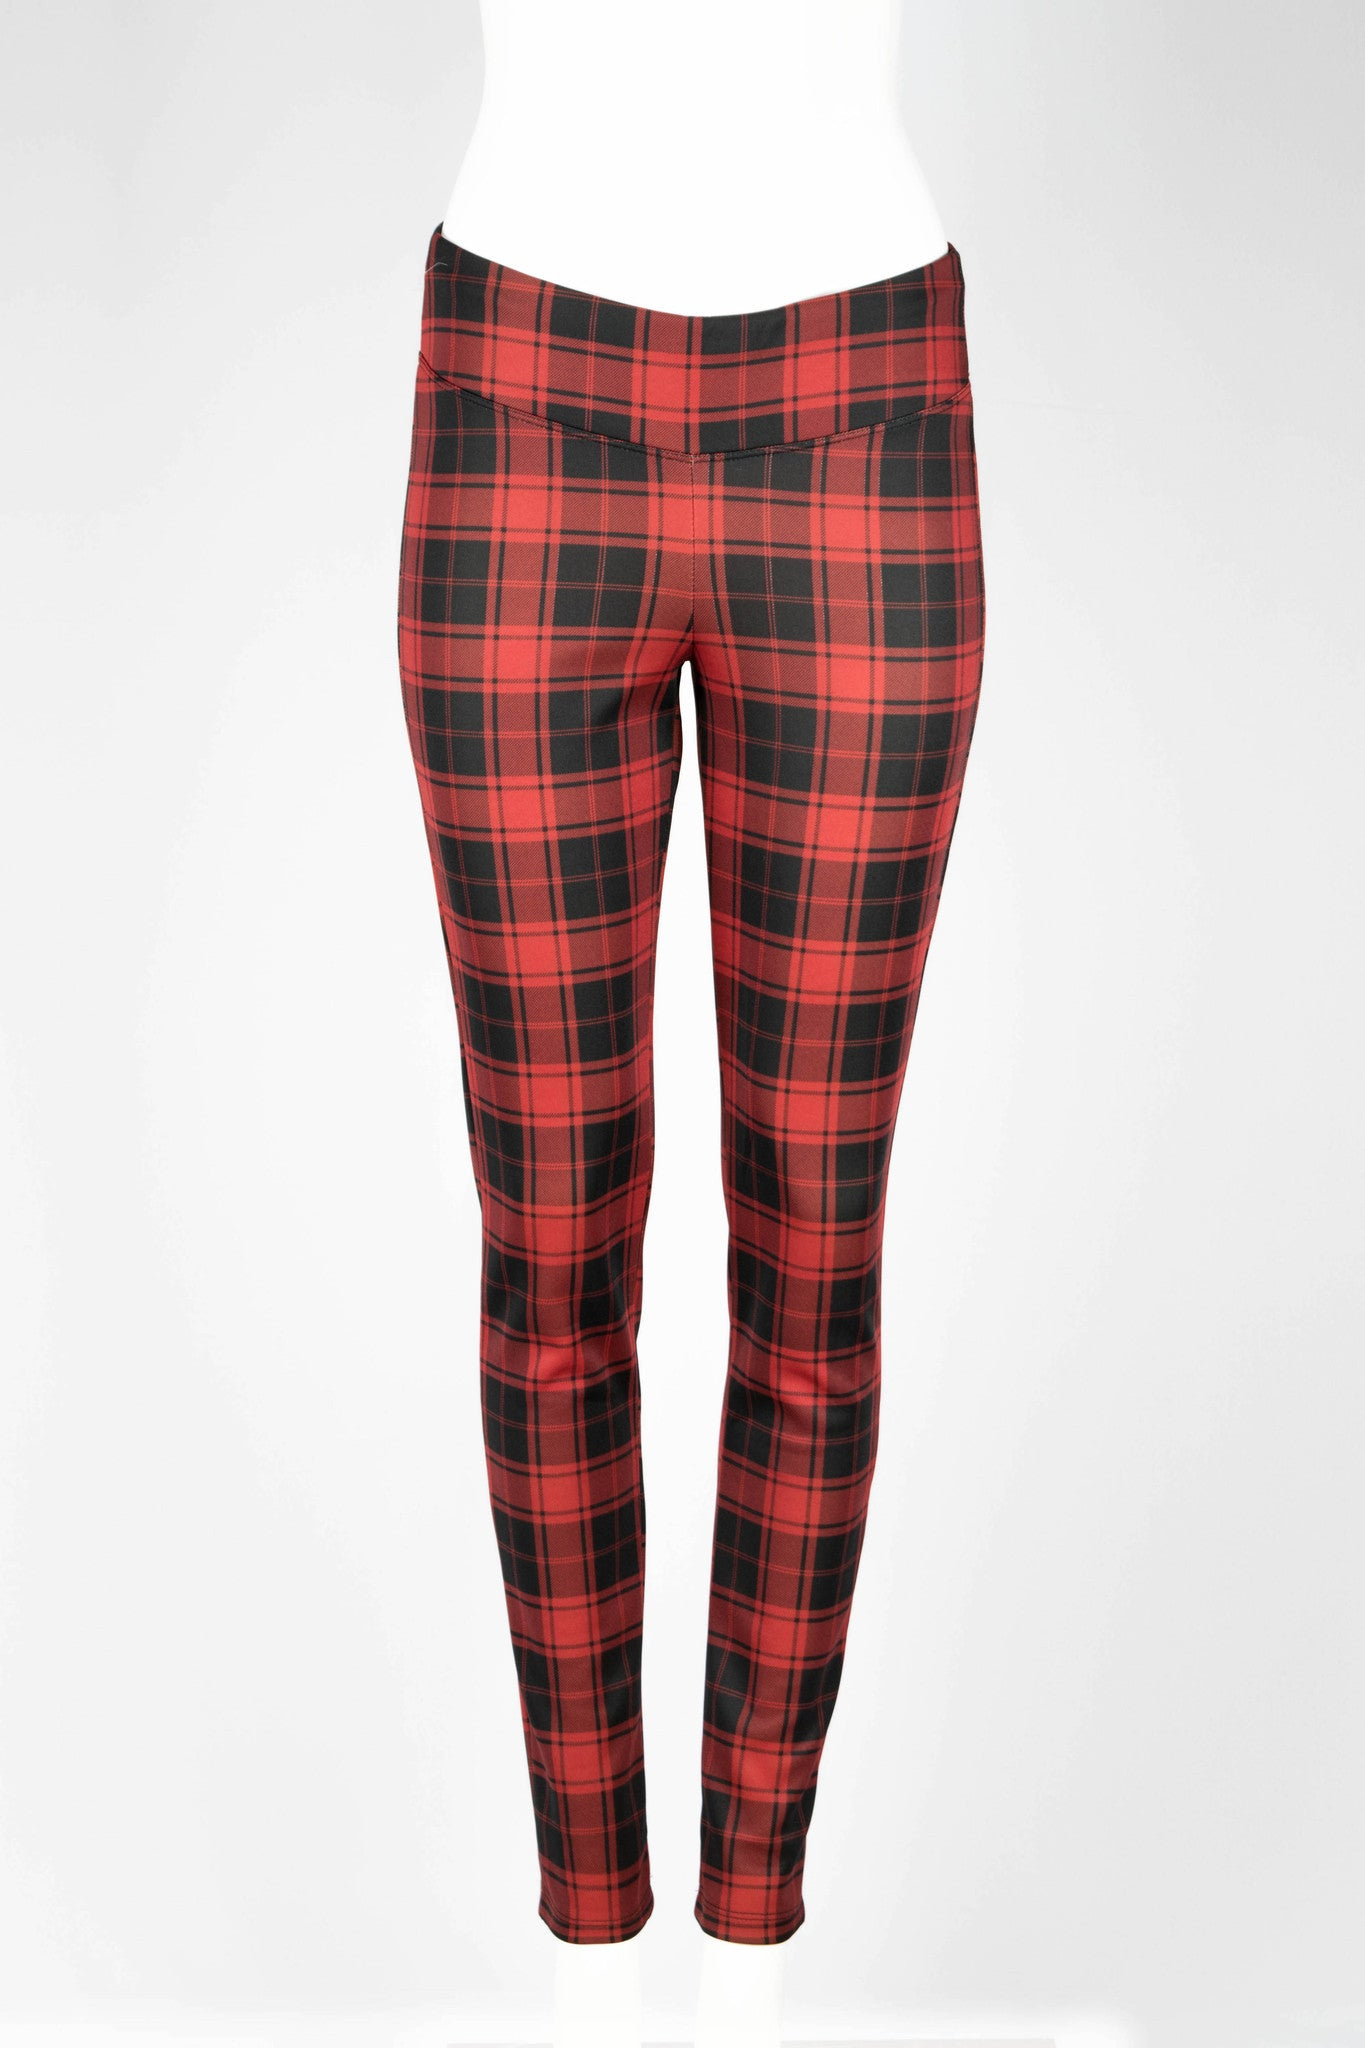 Aubrey Plaid Fitted Pants - ANA MARIA KIM  - 2